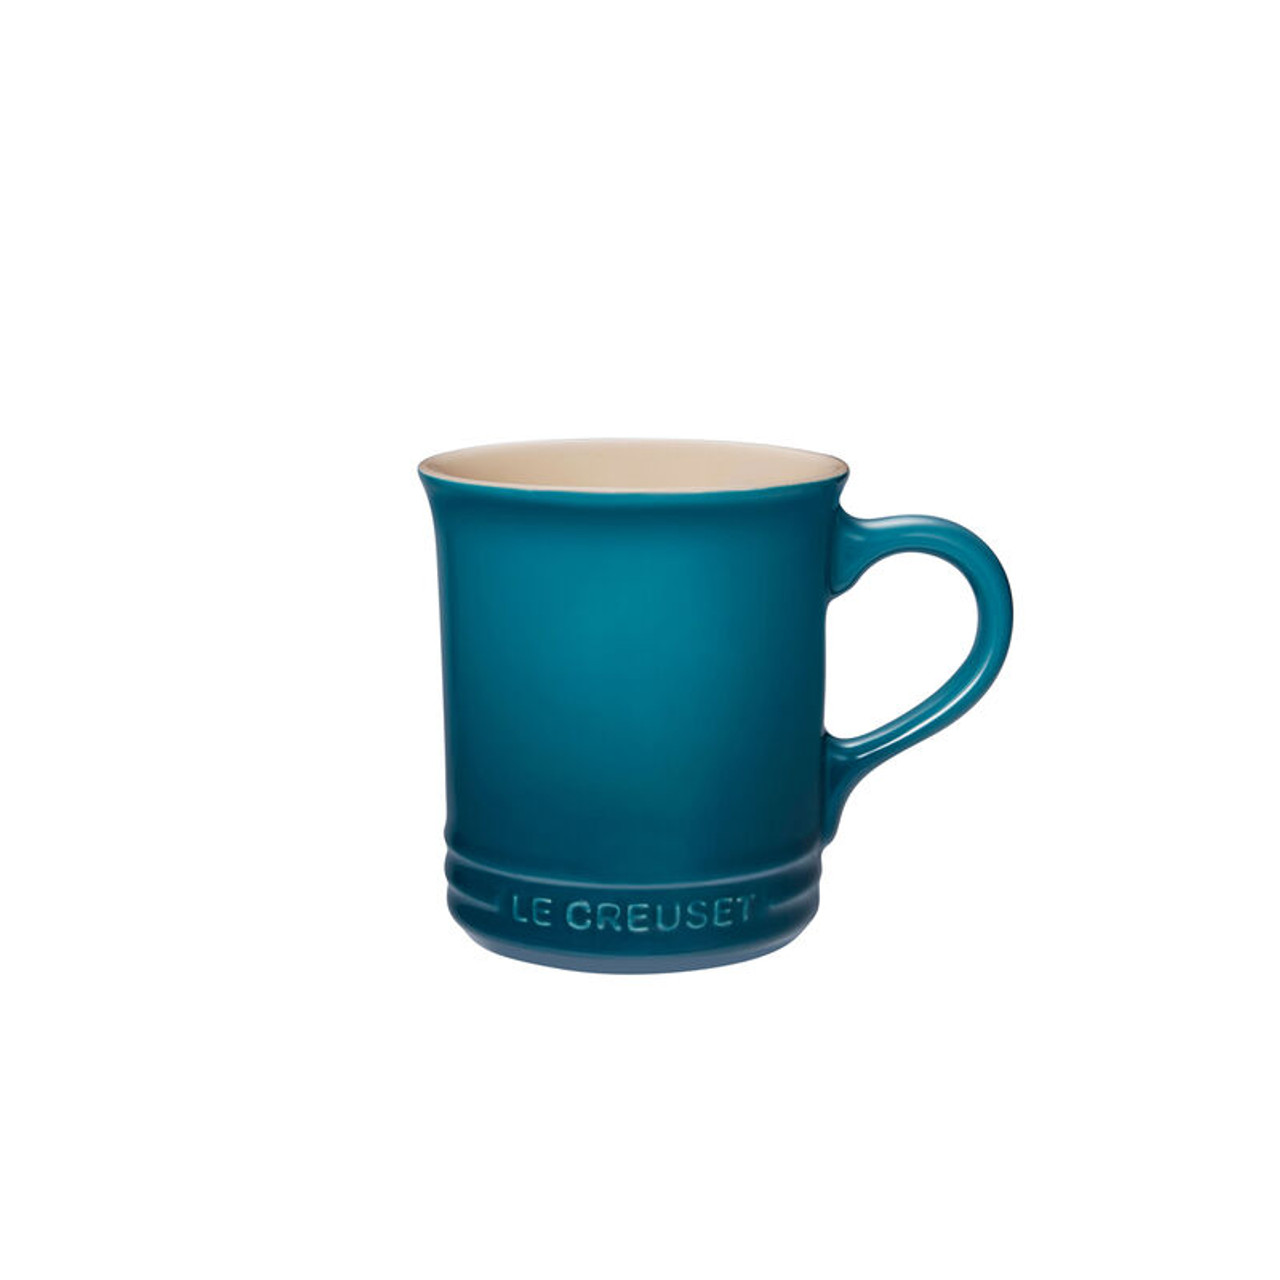 LE CREUSET CLASSIC MUG - SET OF 4